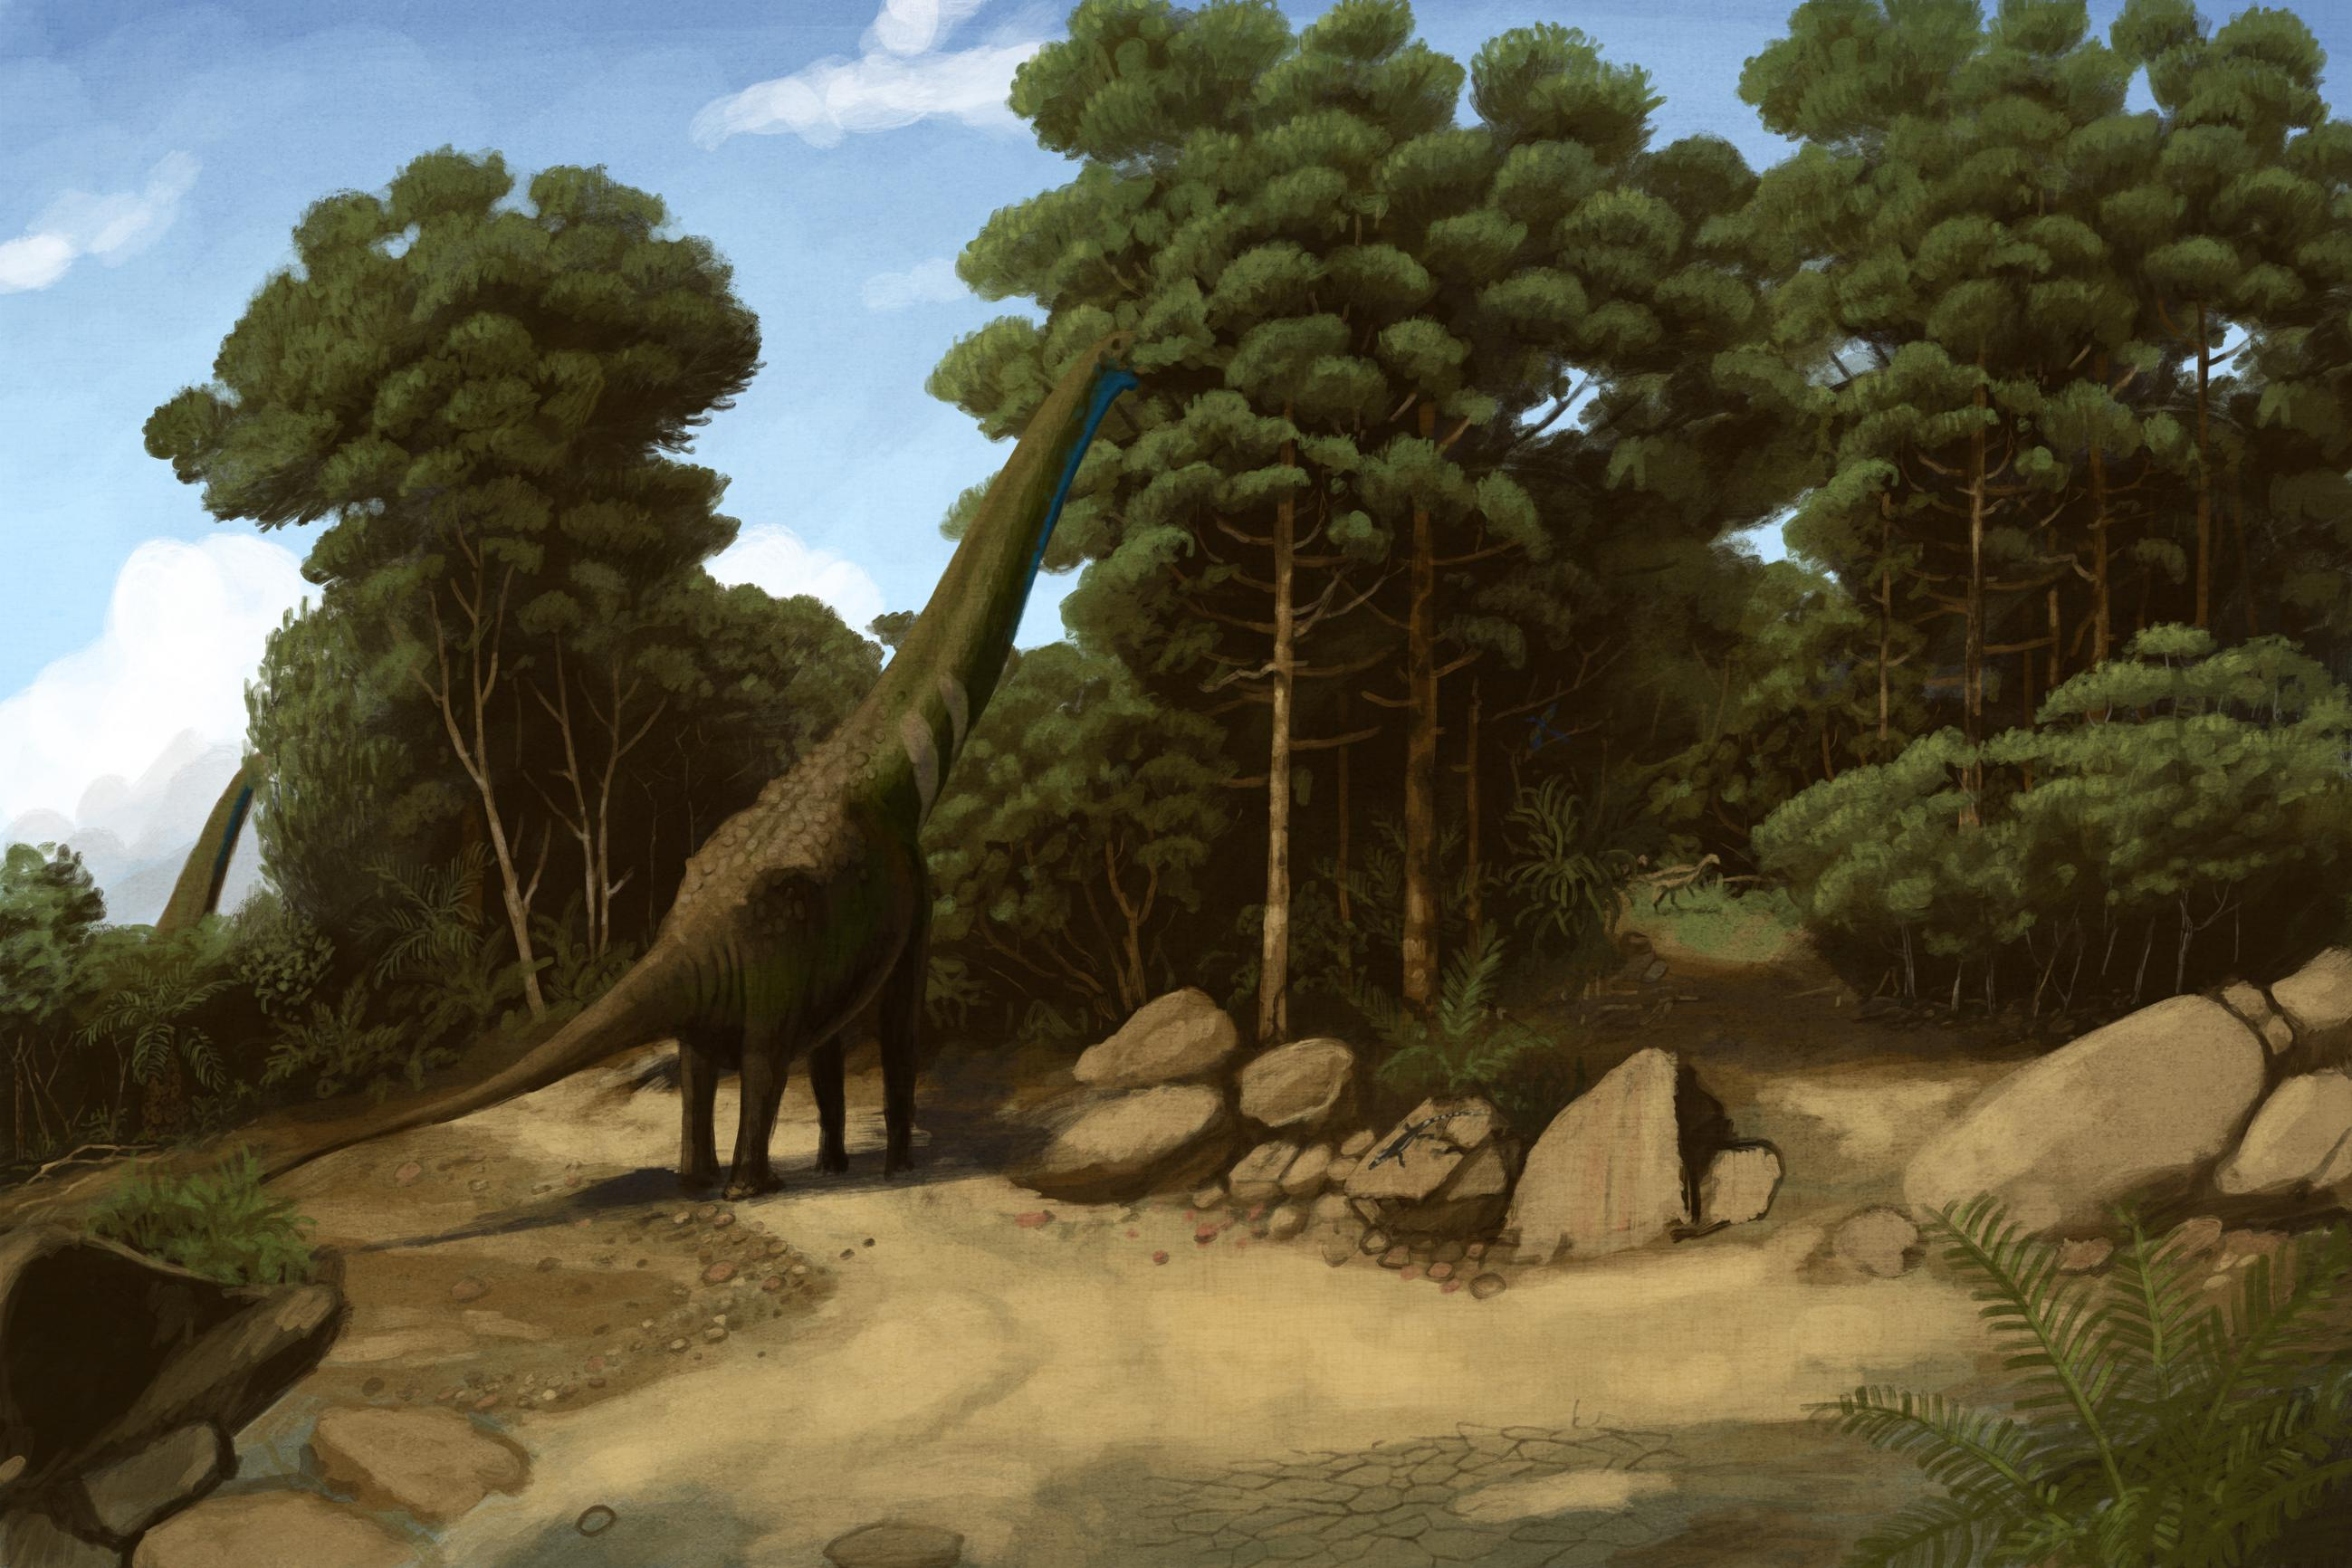 palaeo, painting, dinosaurs, sauropods, early cretaceous, malawi, corot, forest